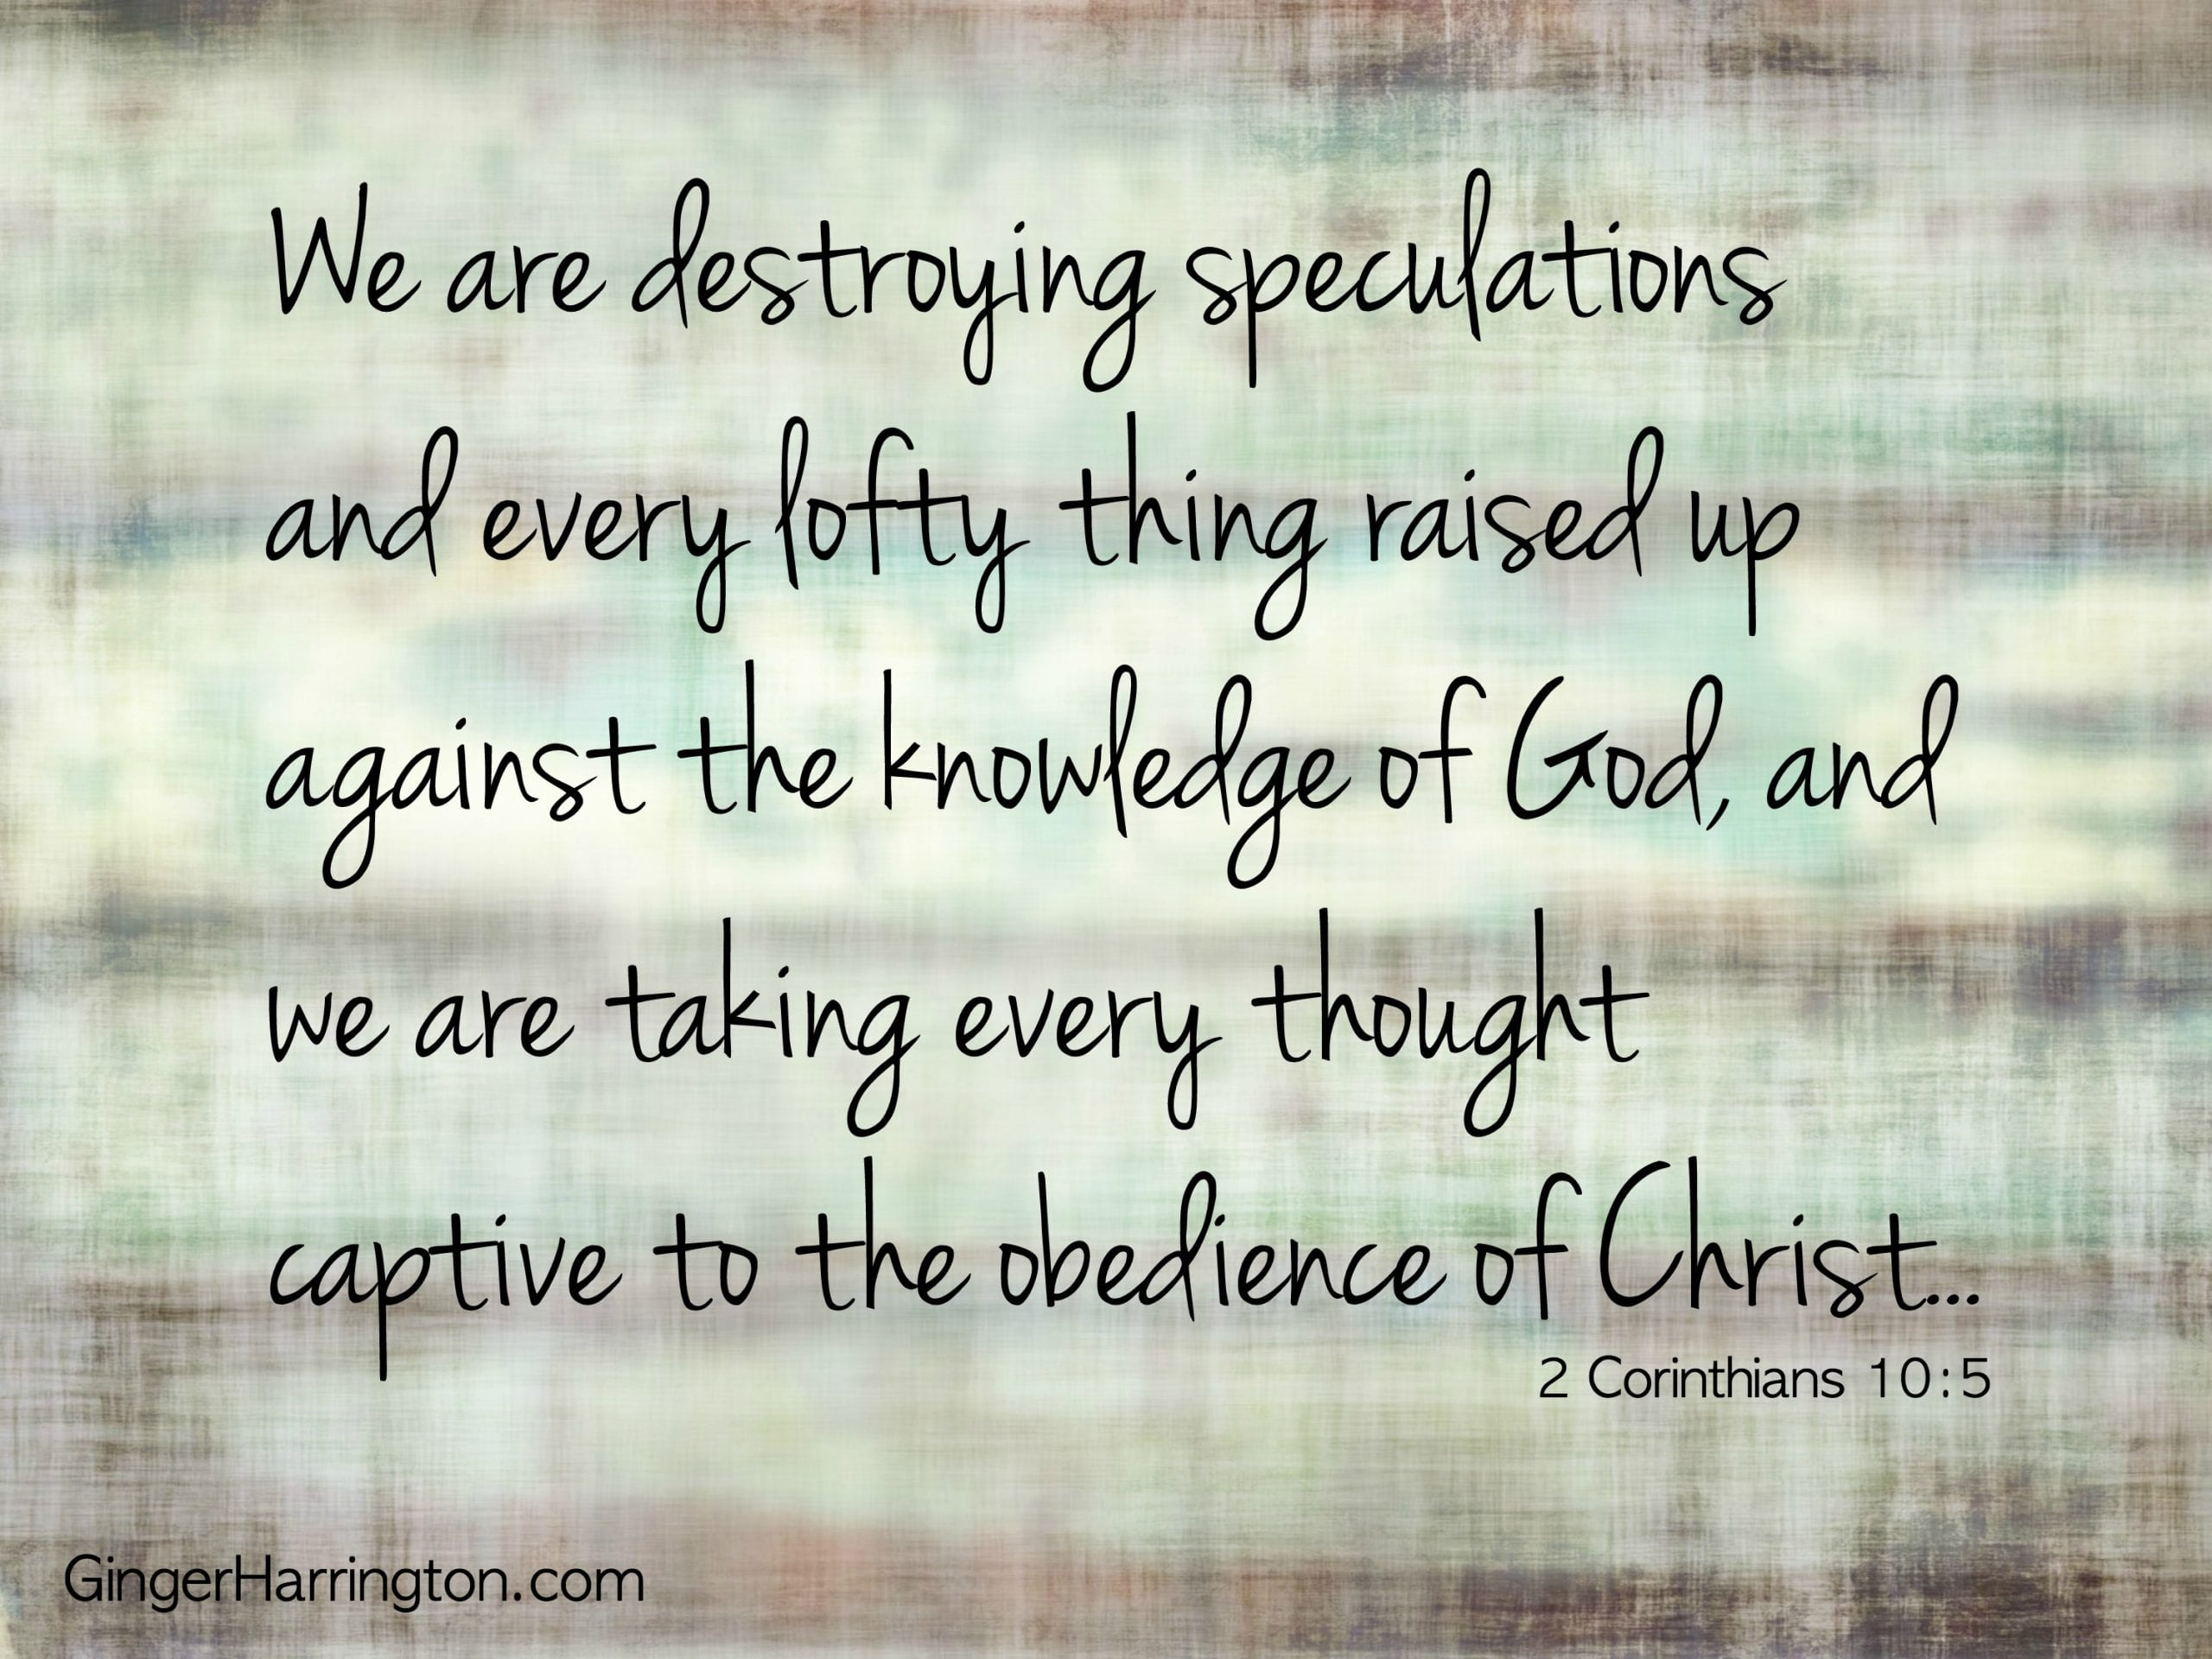 Win the battle of negative thinking with God's word. Bring your thoughts under the control of Christ. Scriptures to overcome negative thinking.